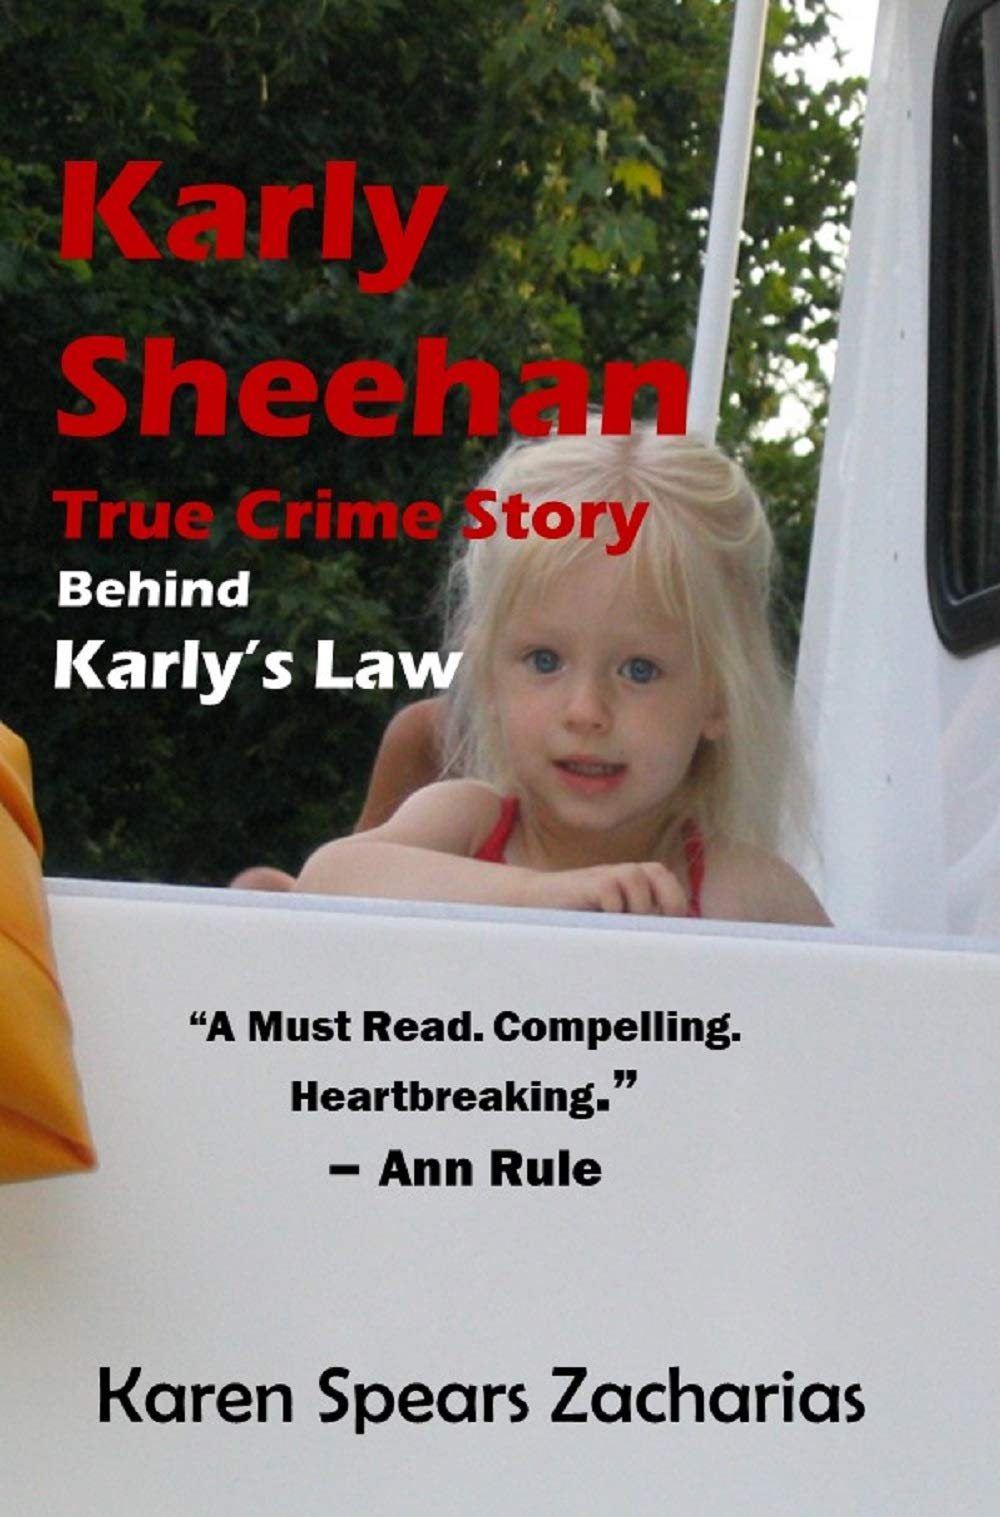 Download Karly Sheehan: True Crime Behind Karly's Law 